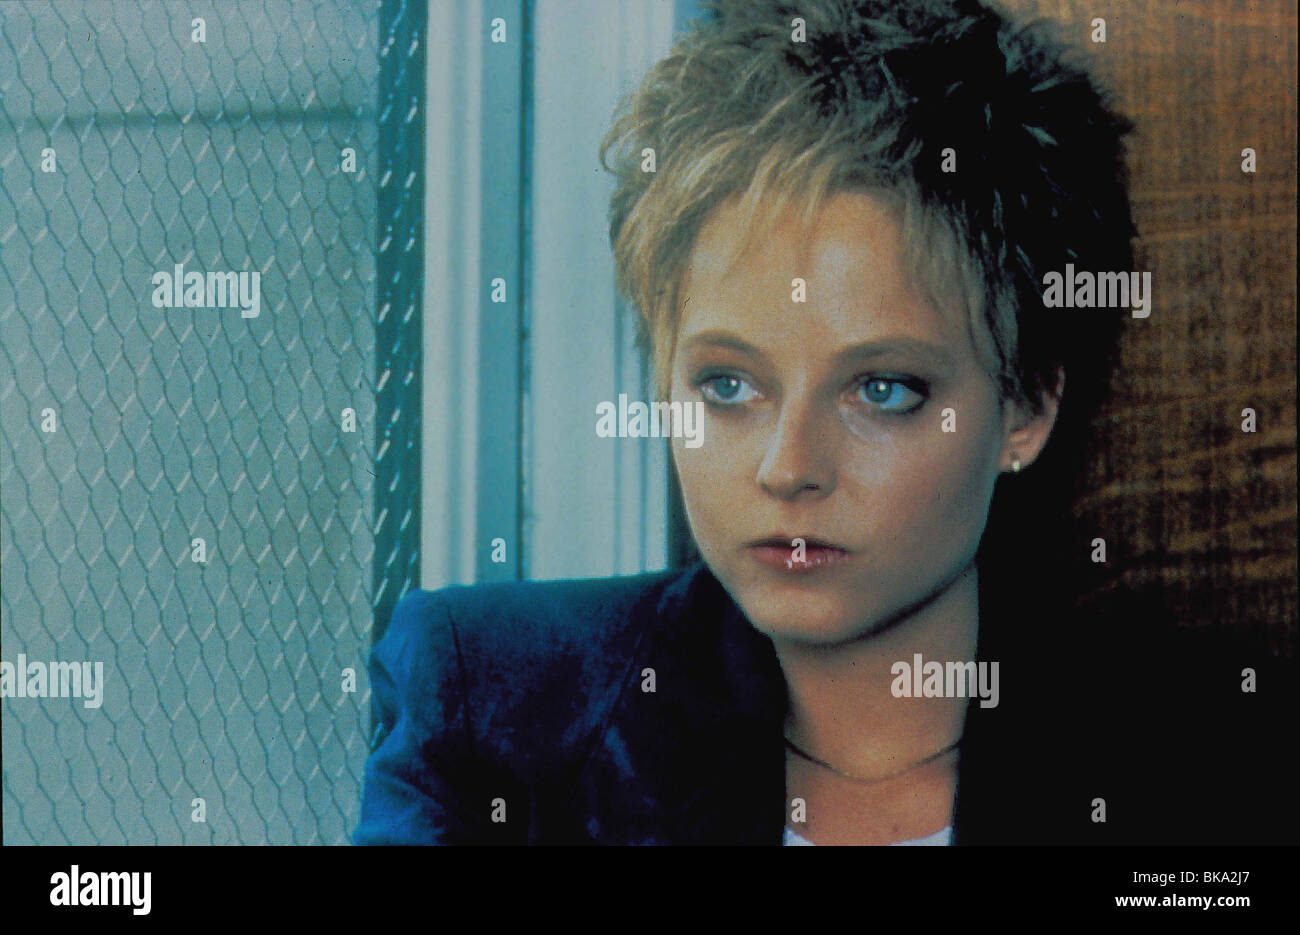 jodie foster the accused stock photo royalty image the accused 1988 jodie foster stock photo